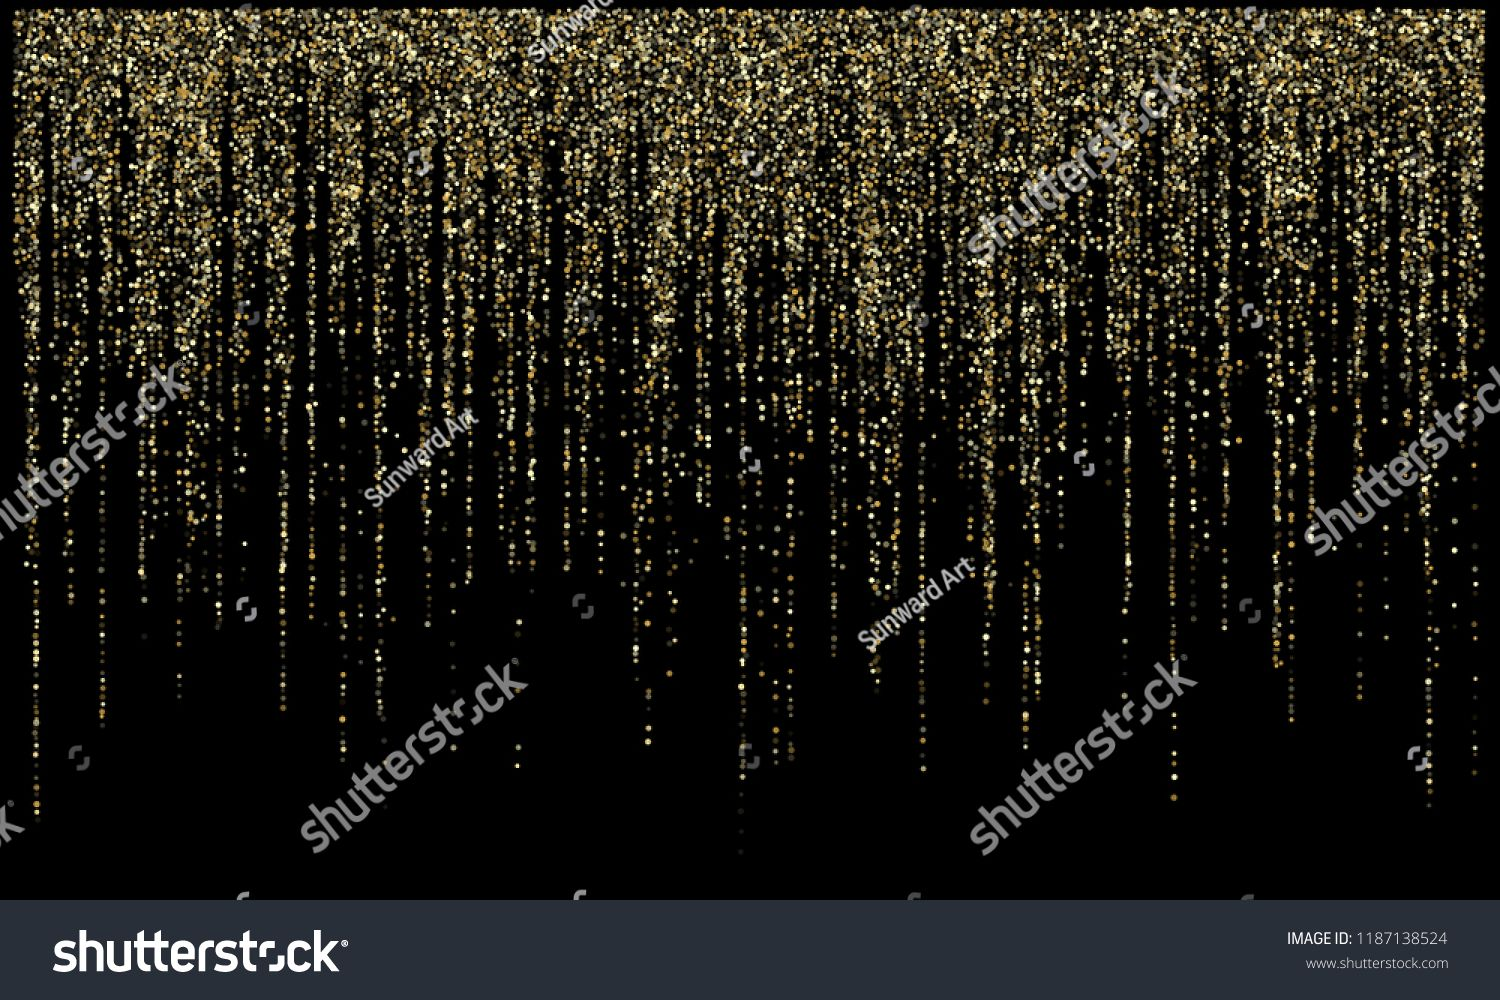 Garland Lights Gold Glitter Hanging Vertical Lines Vector Holiday Background Confetti Dots Rain Vip Gold Ga Holiday Background Light Garland Christmas Tinsel